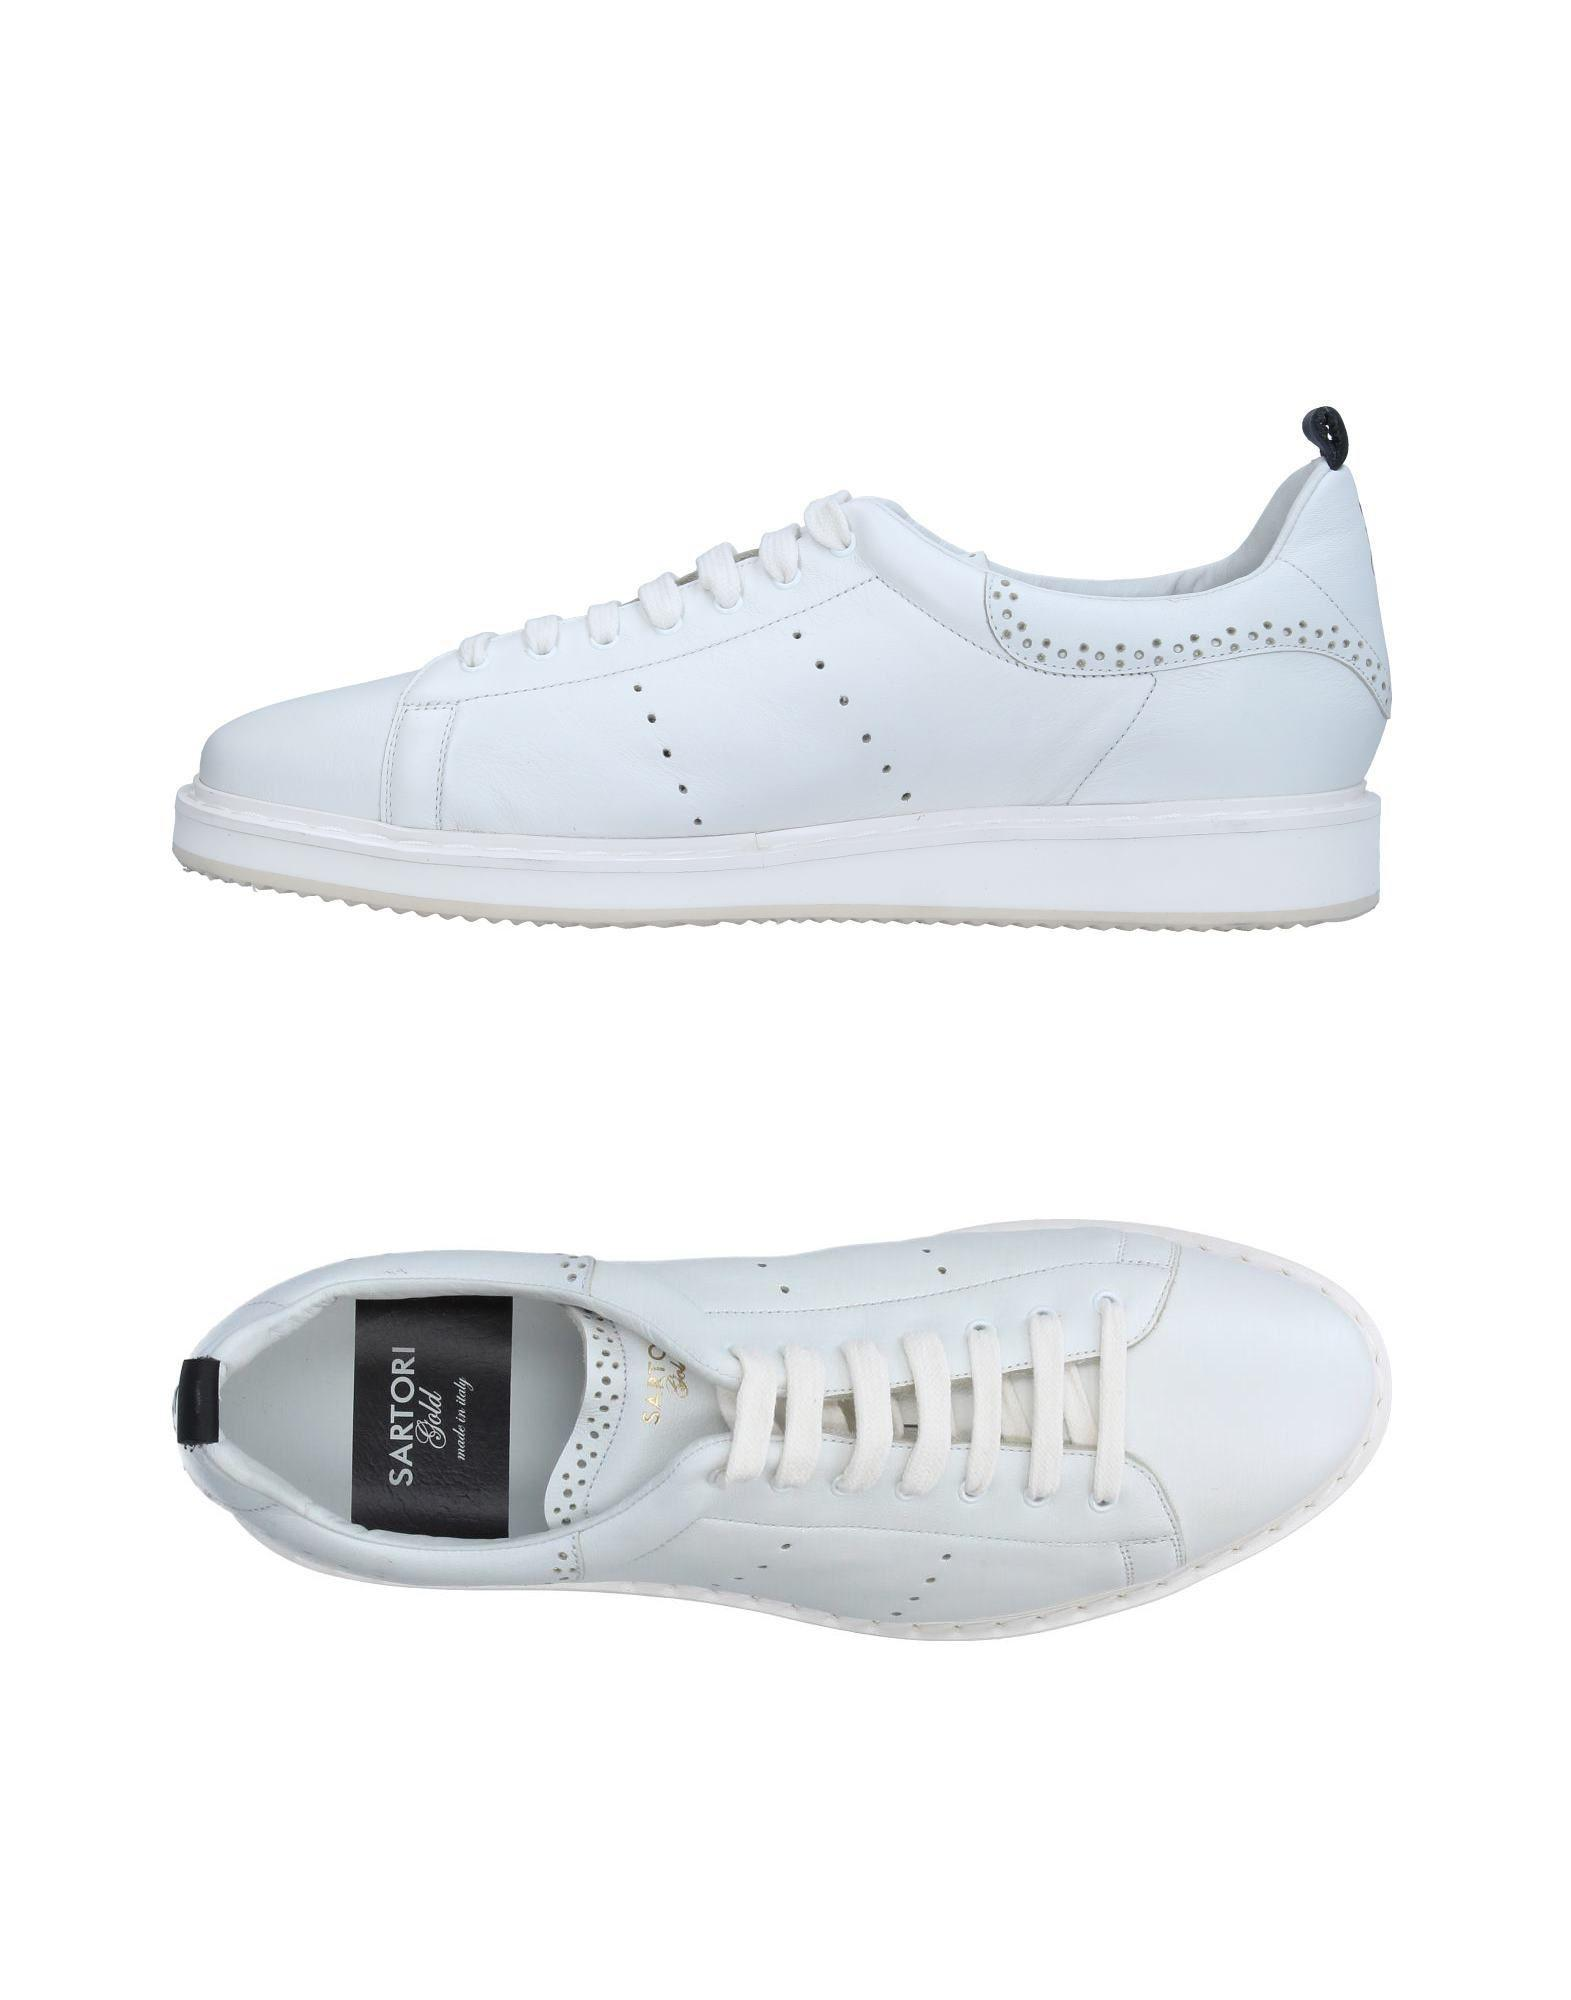 Chaussures - Bas-tops Et Baskets Collection Prive 9K7w7Rq